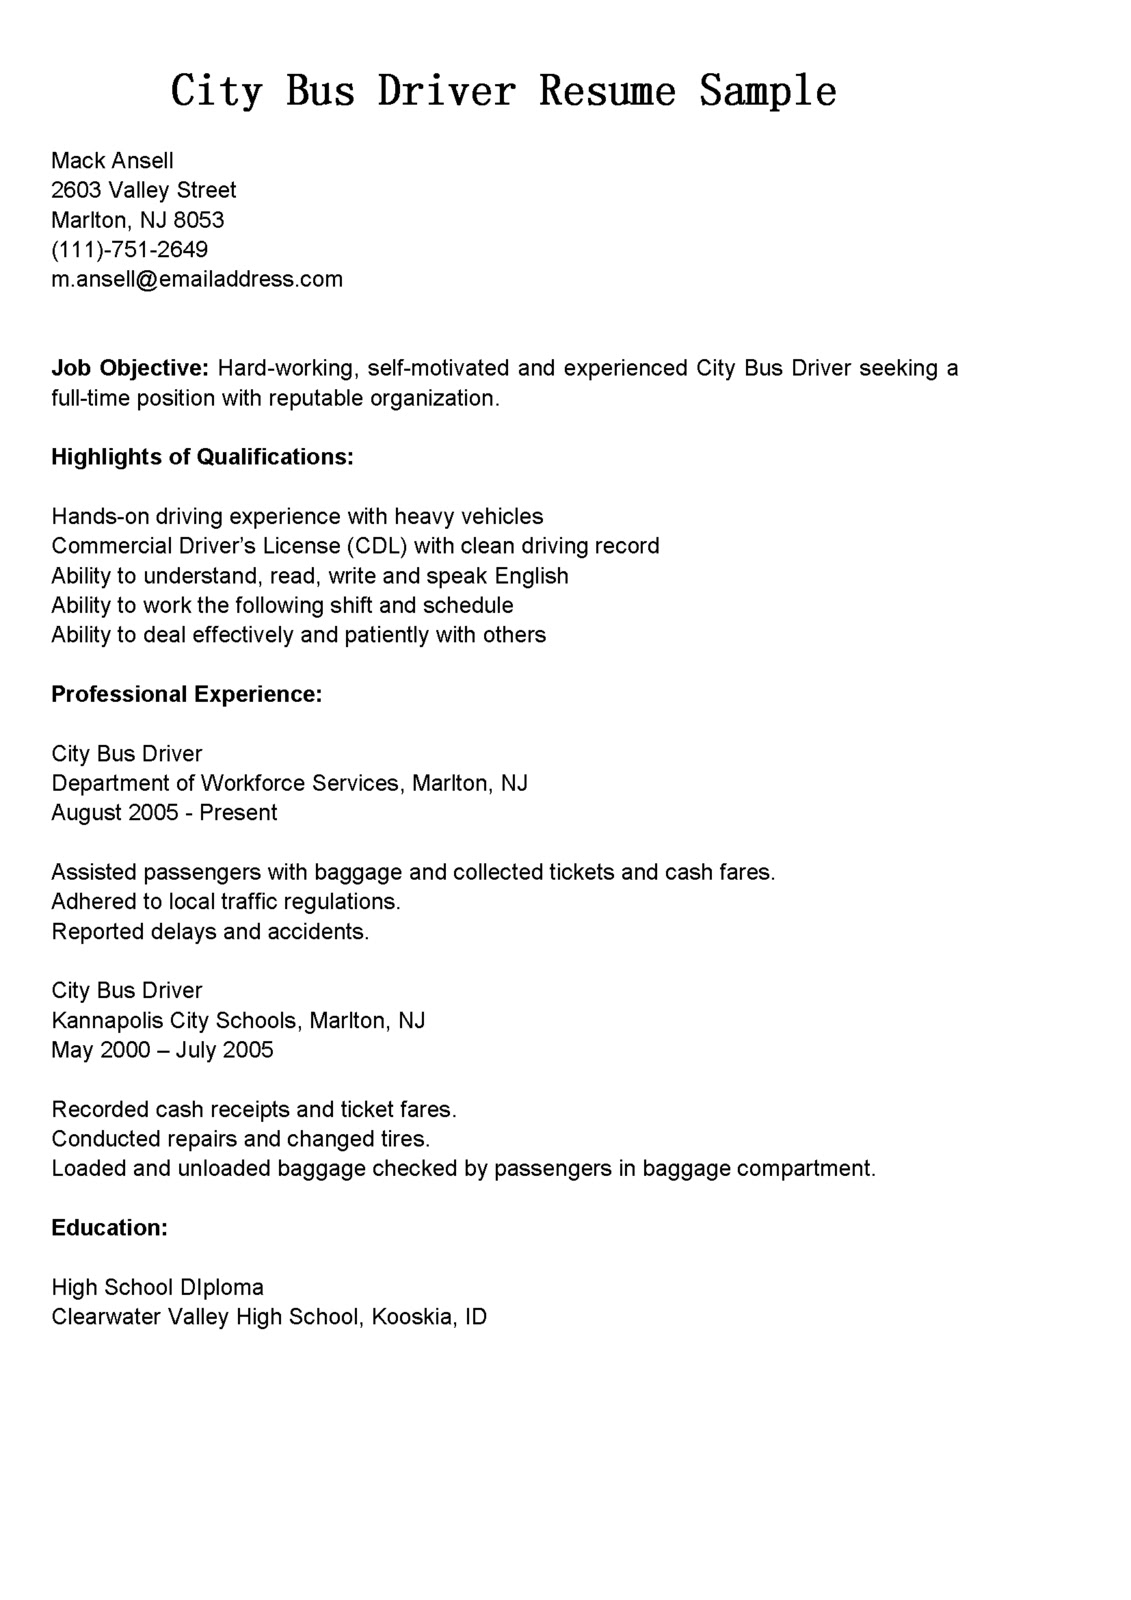 Resume For A Driver Driver Resumes City Bus Driver Resume Sample